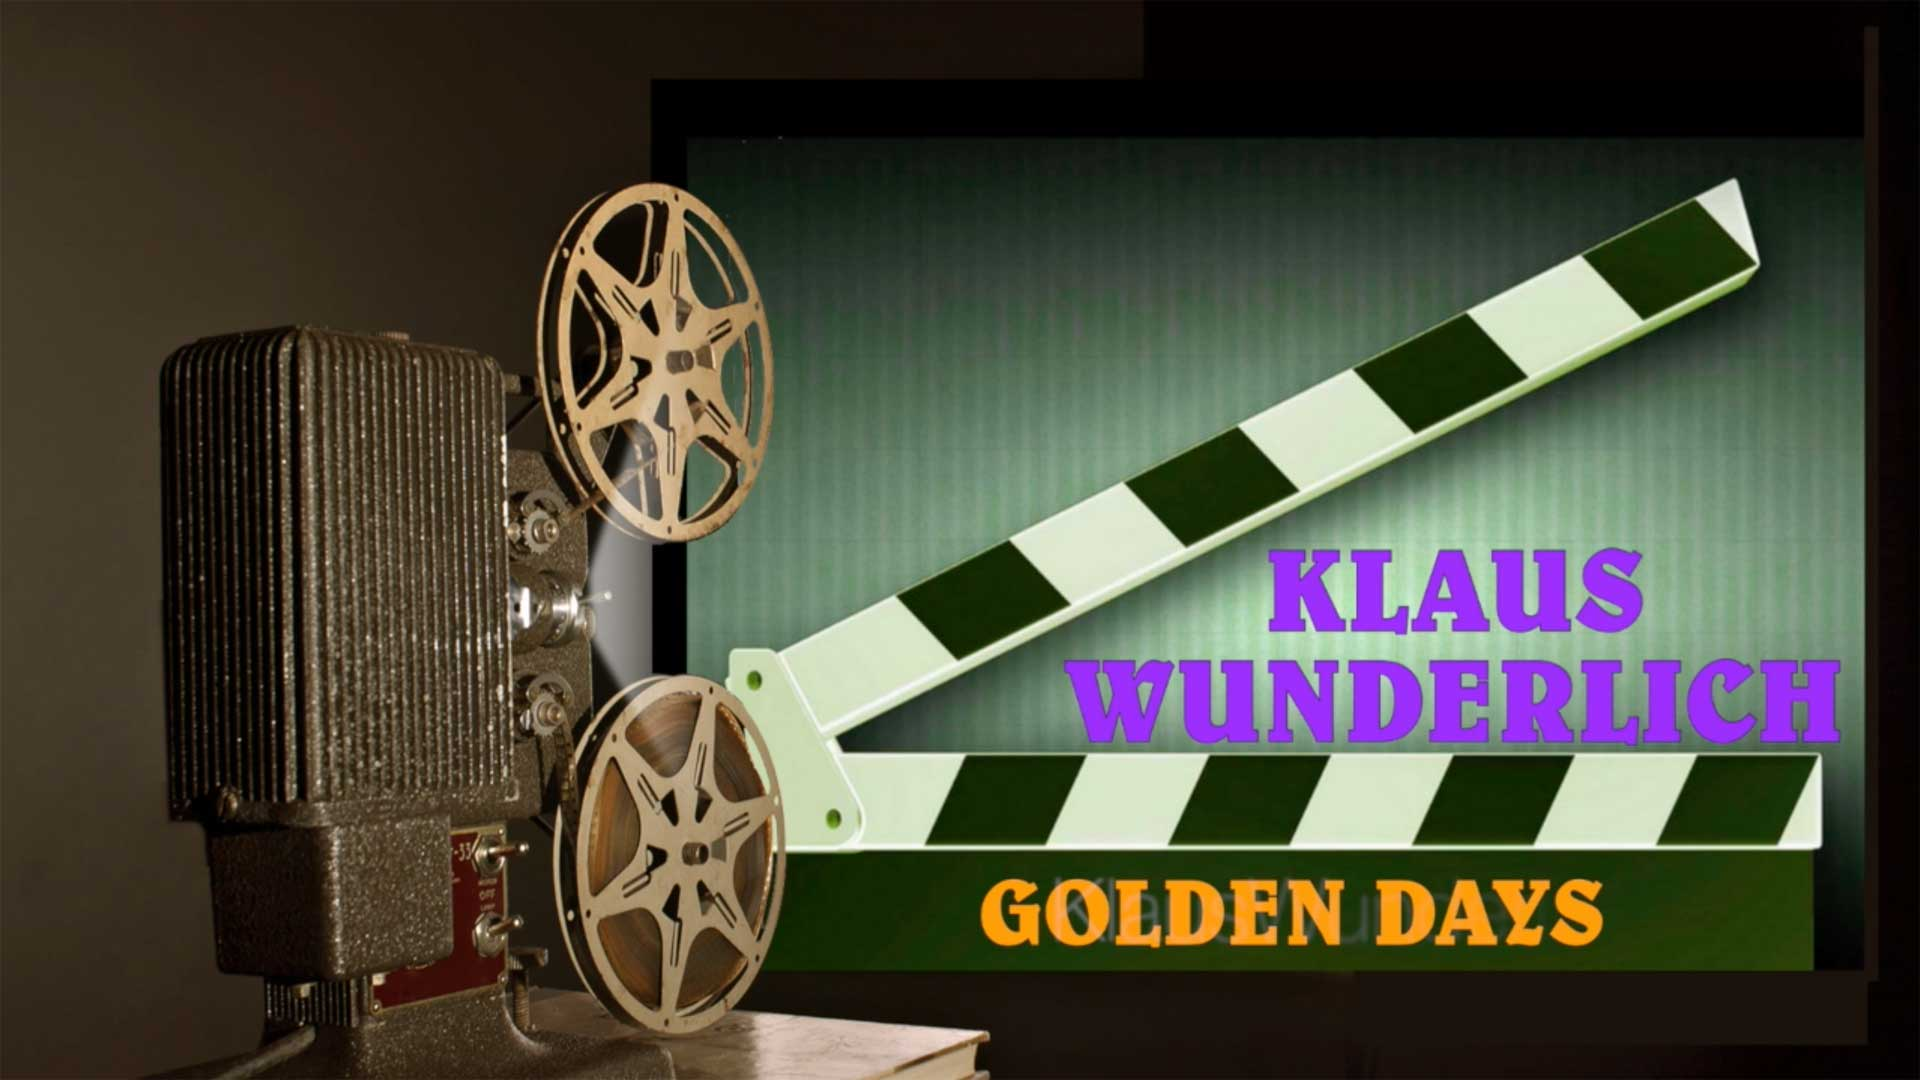 Klaus Wunderlich - Golden Days Video